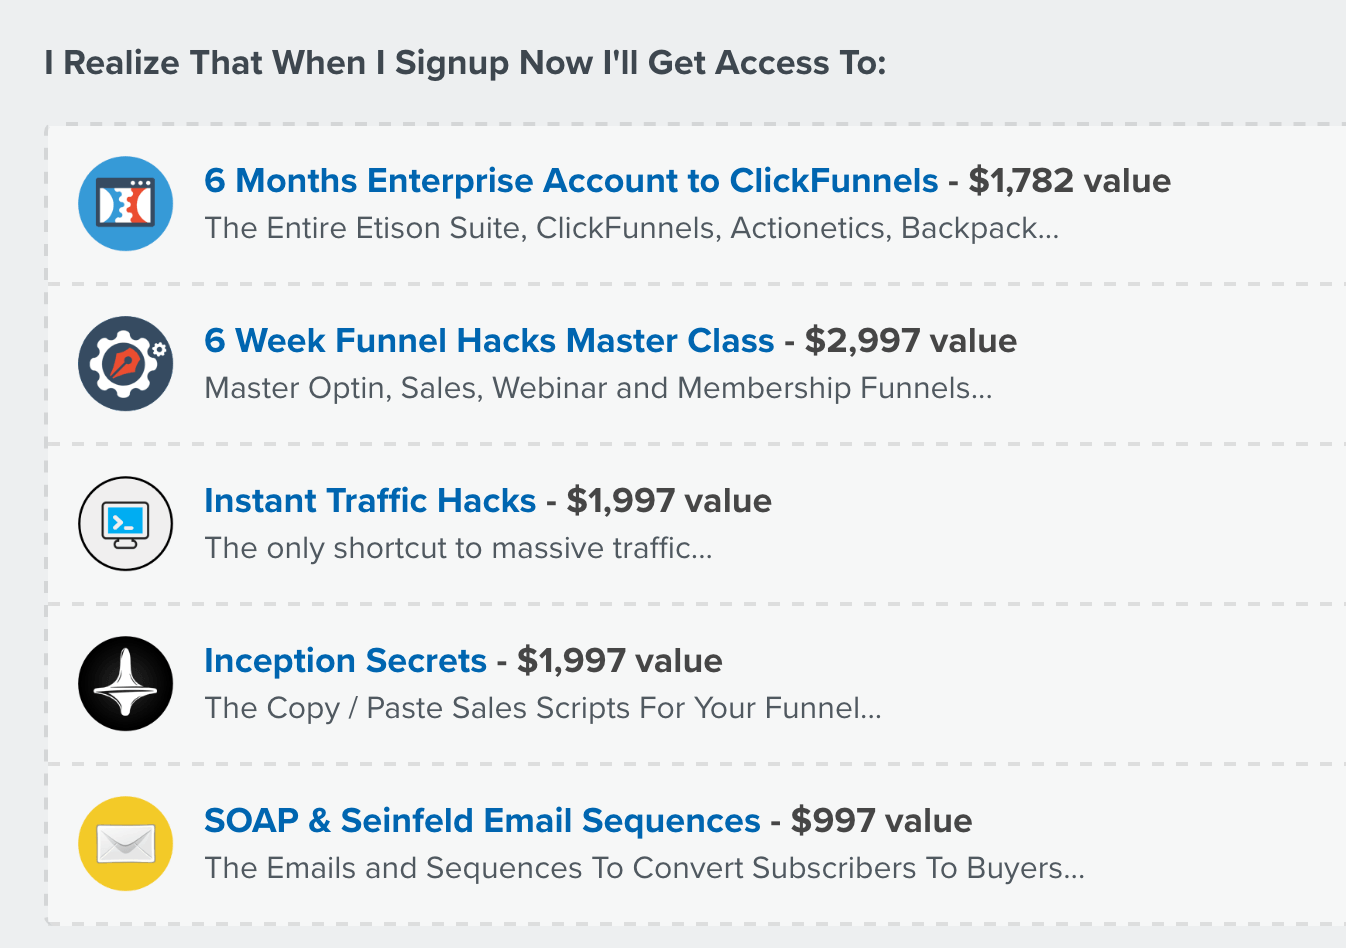 Integrate Shopify And Clickfunnels